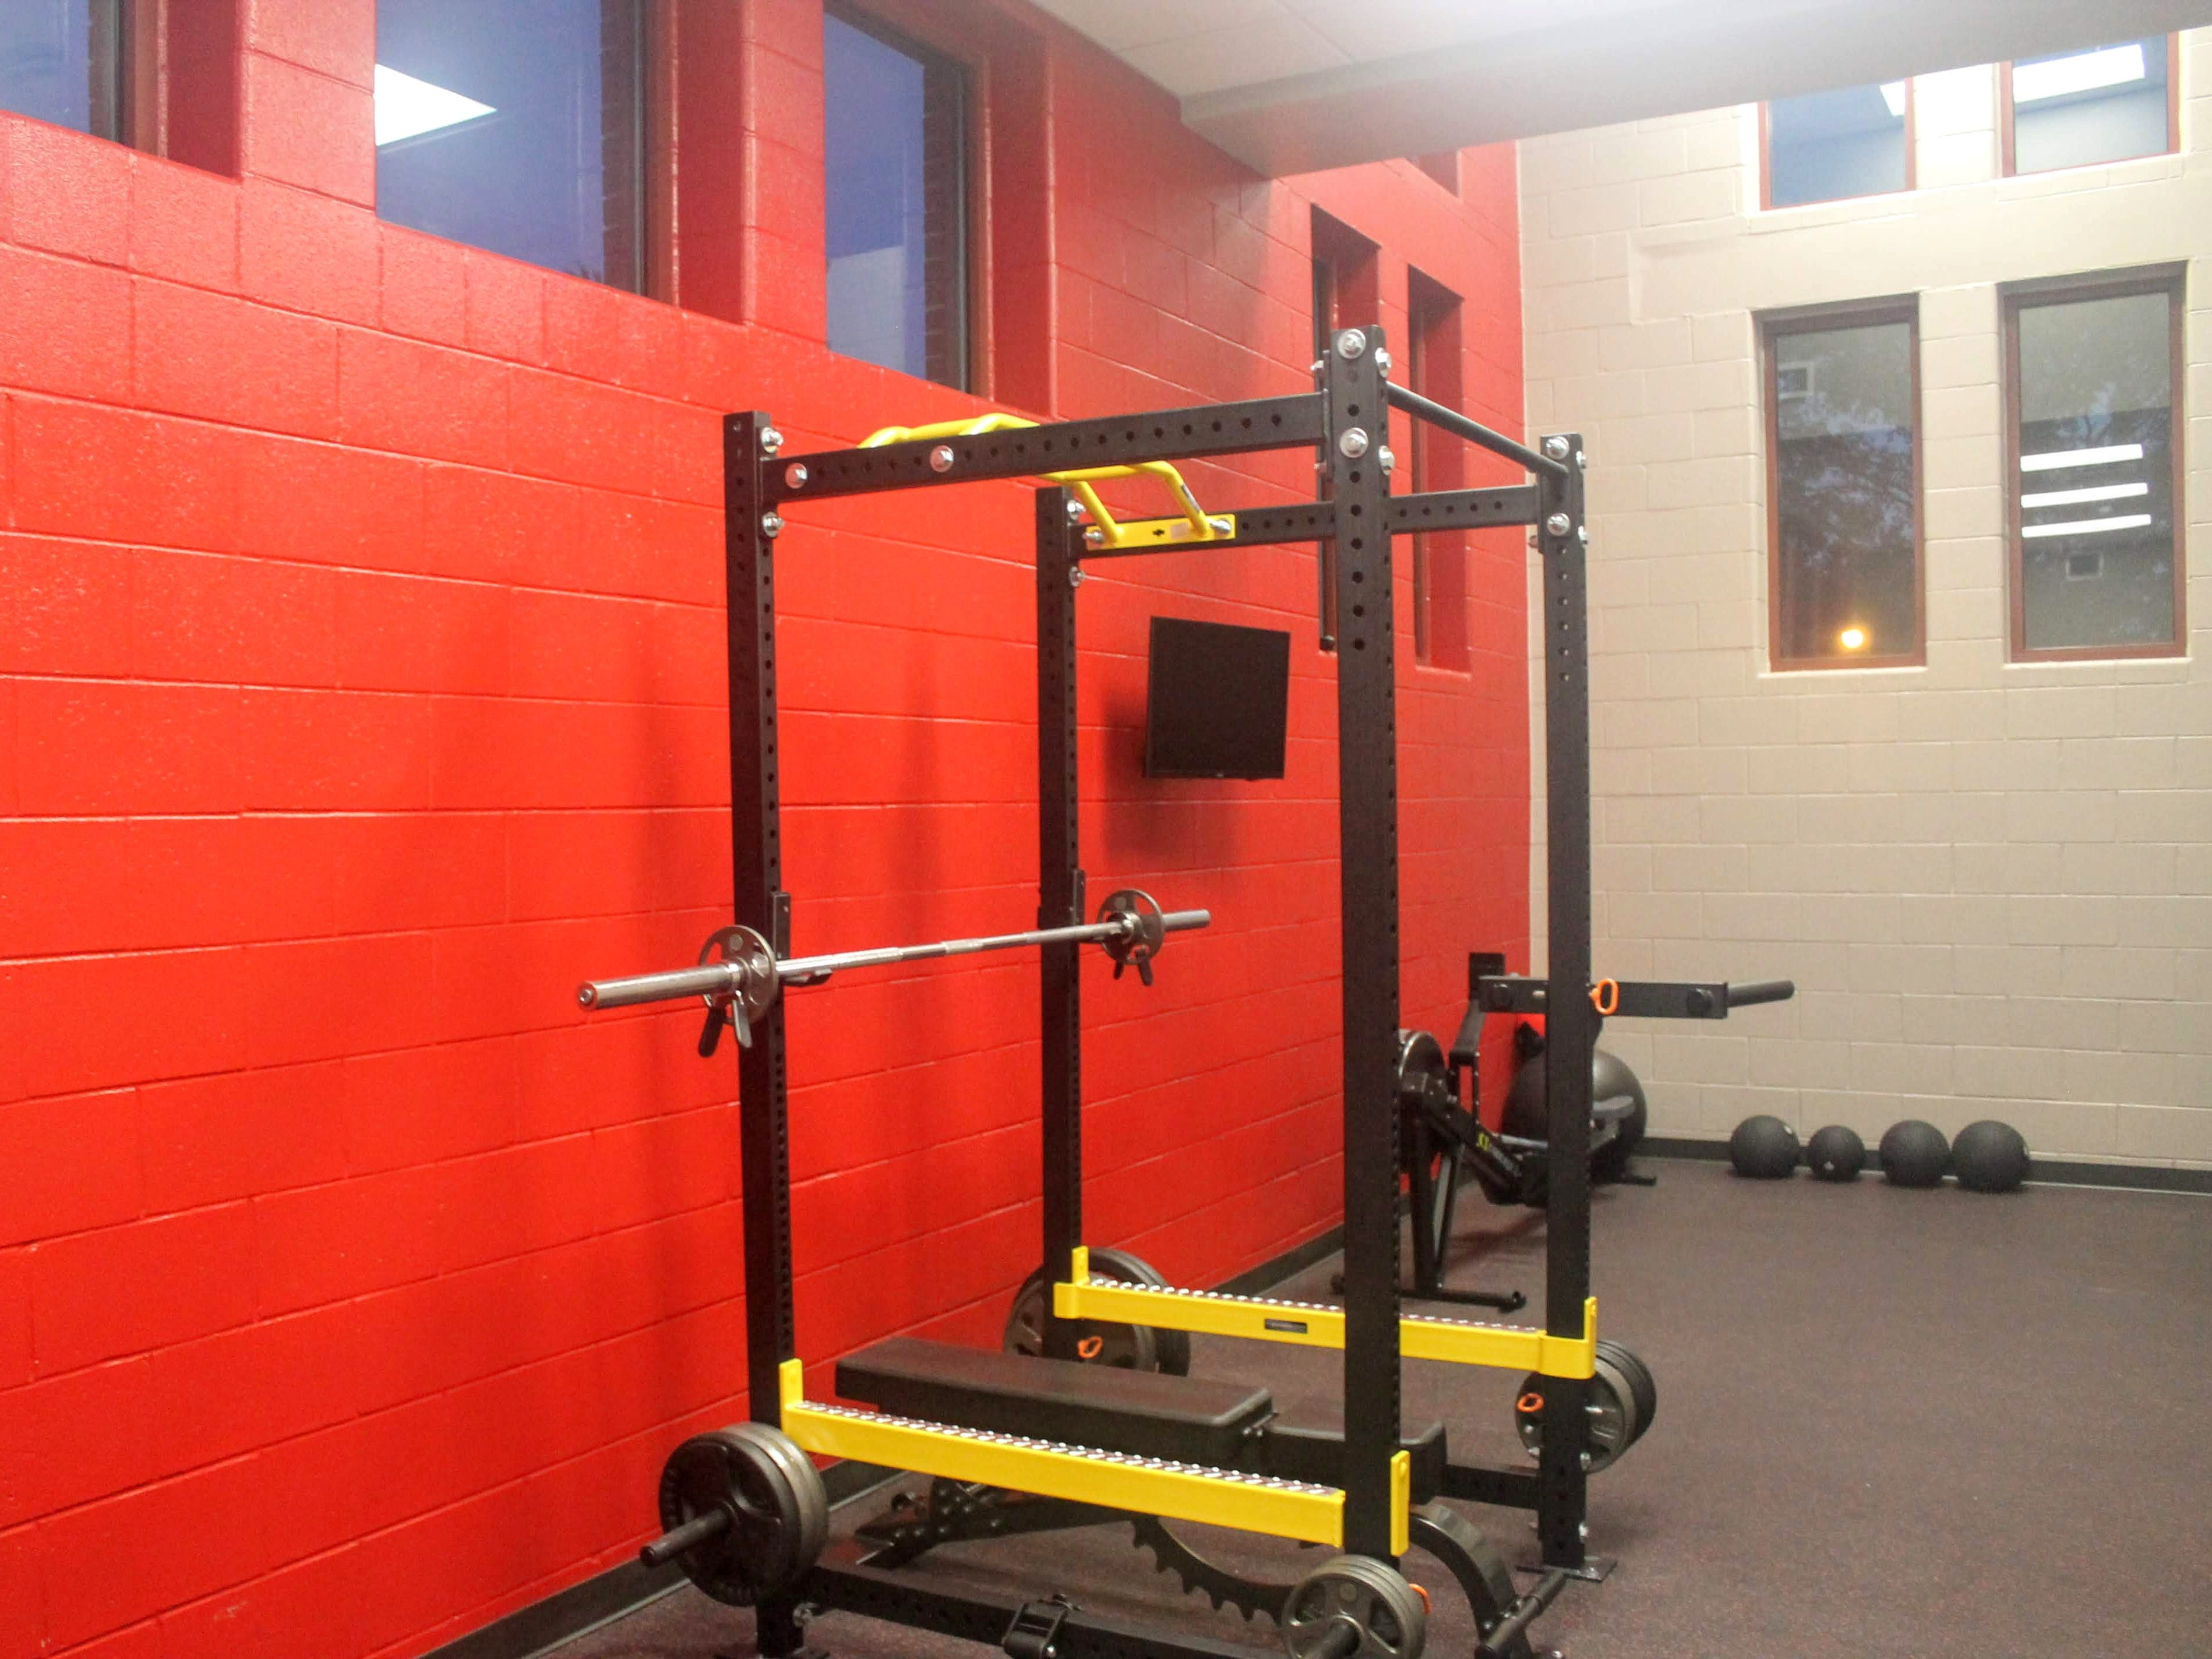 The new workout facility in the Chesterfield Fire Station.